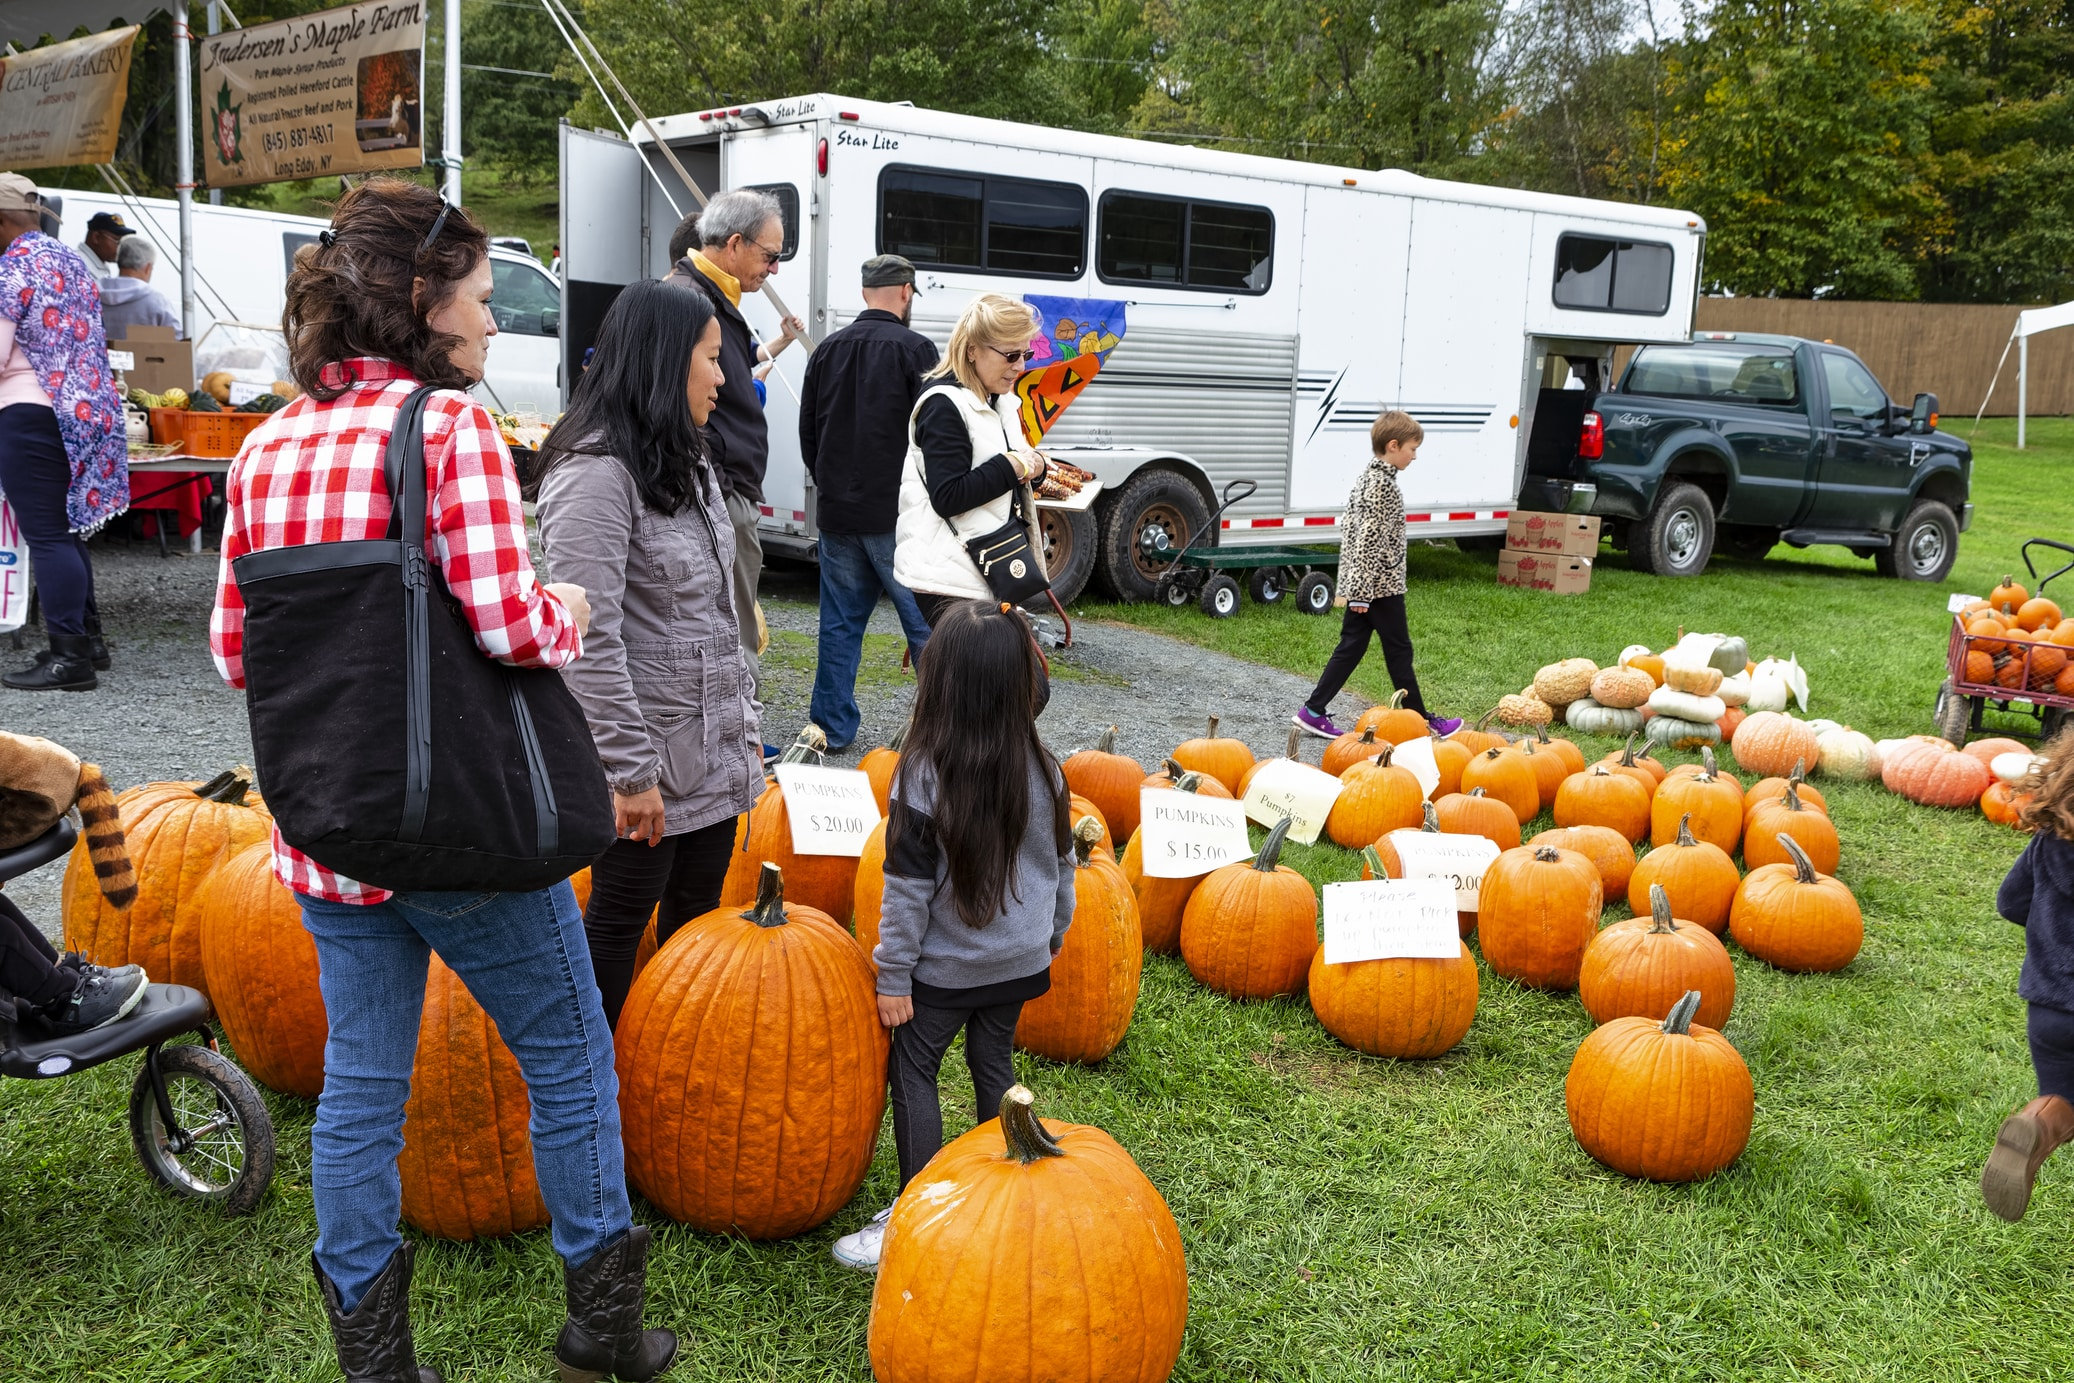 Fall events like Harvest Fests are so much fun!